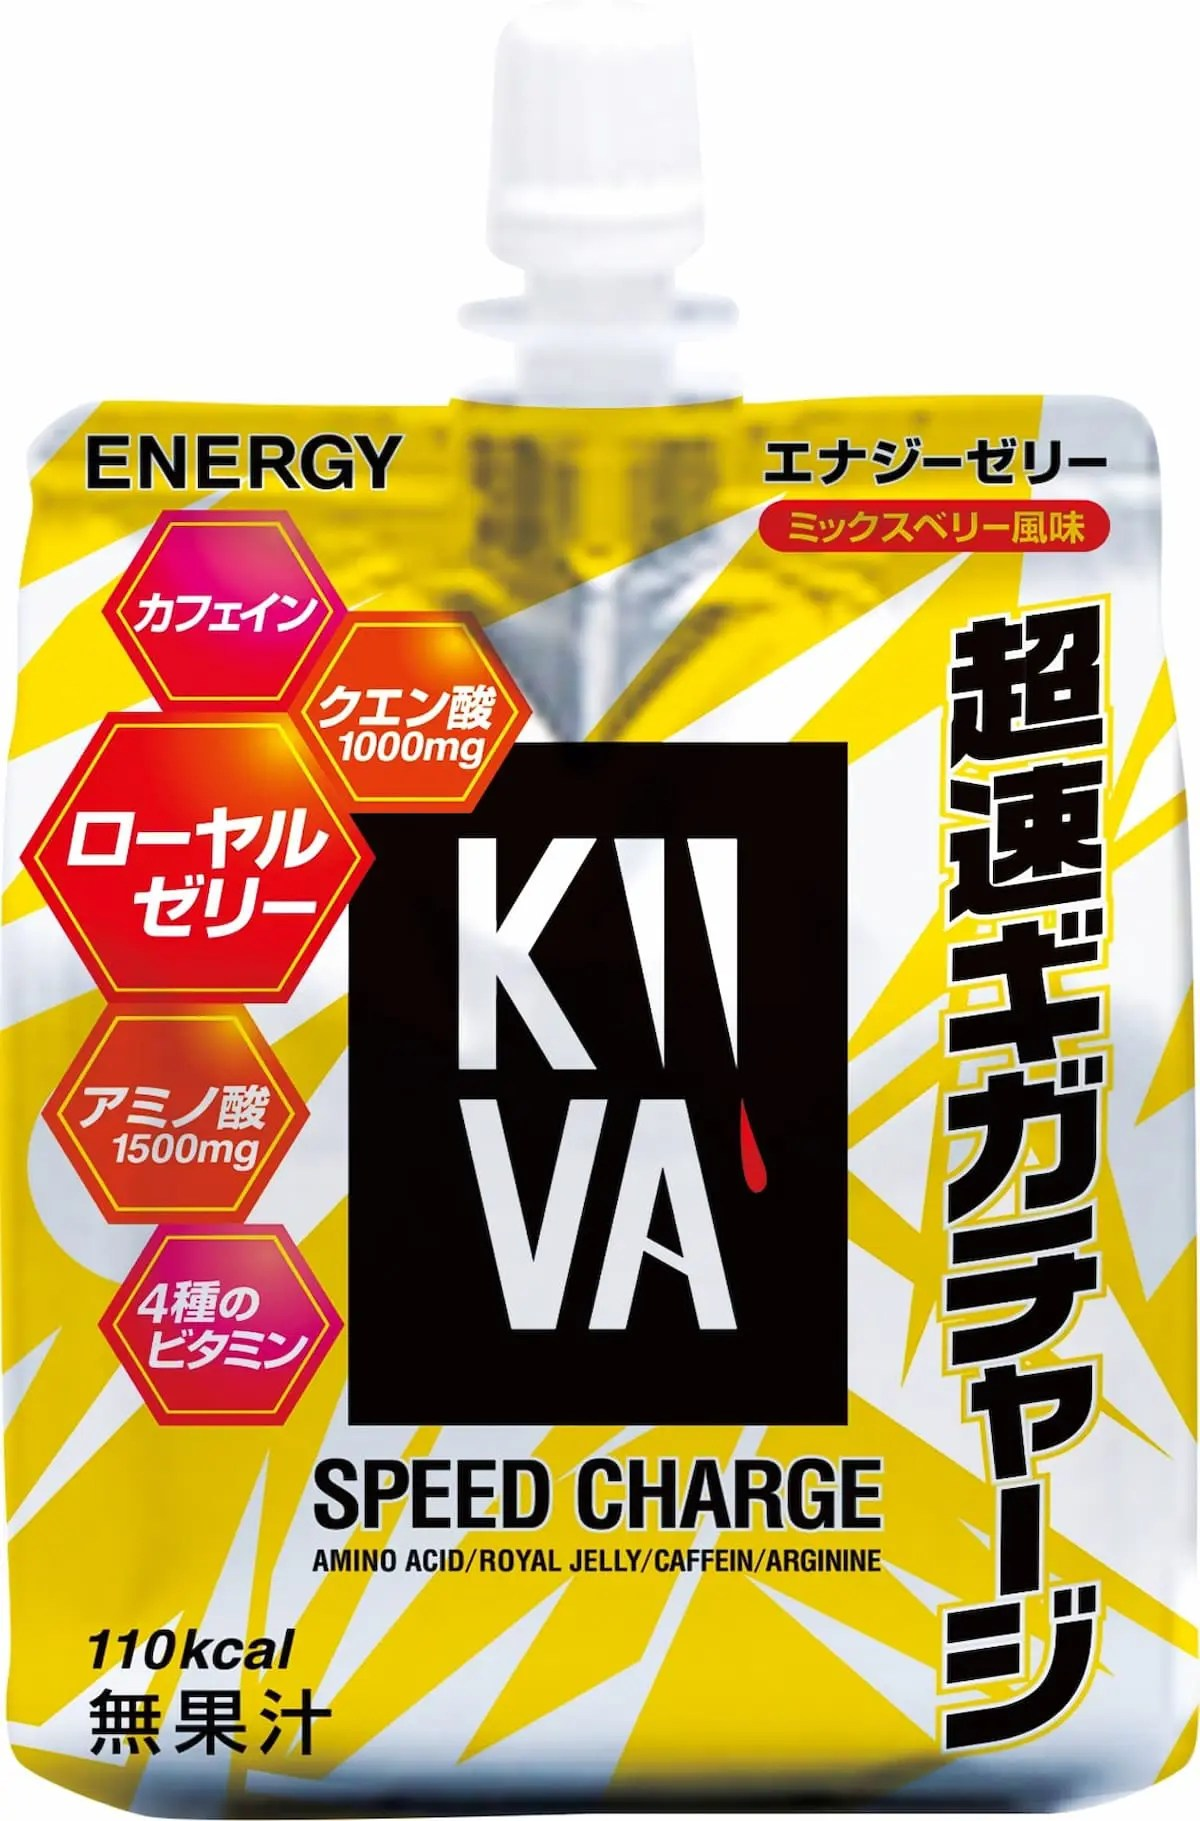 KiiVA SPEED CHARGE